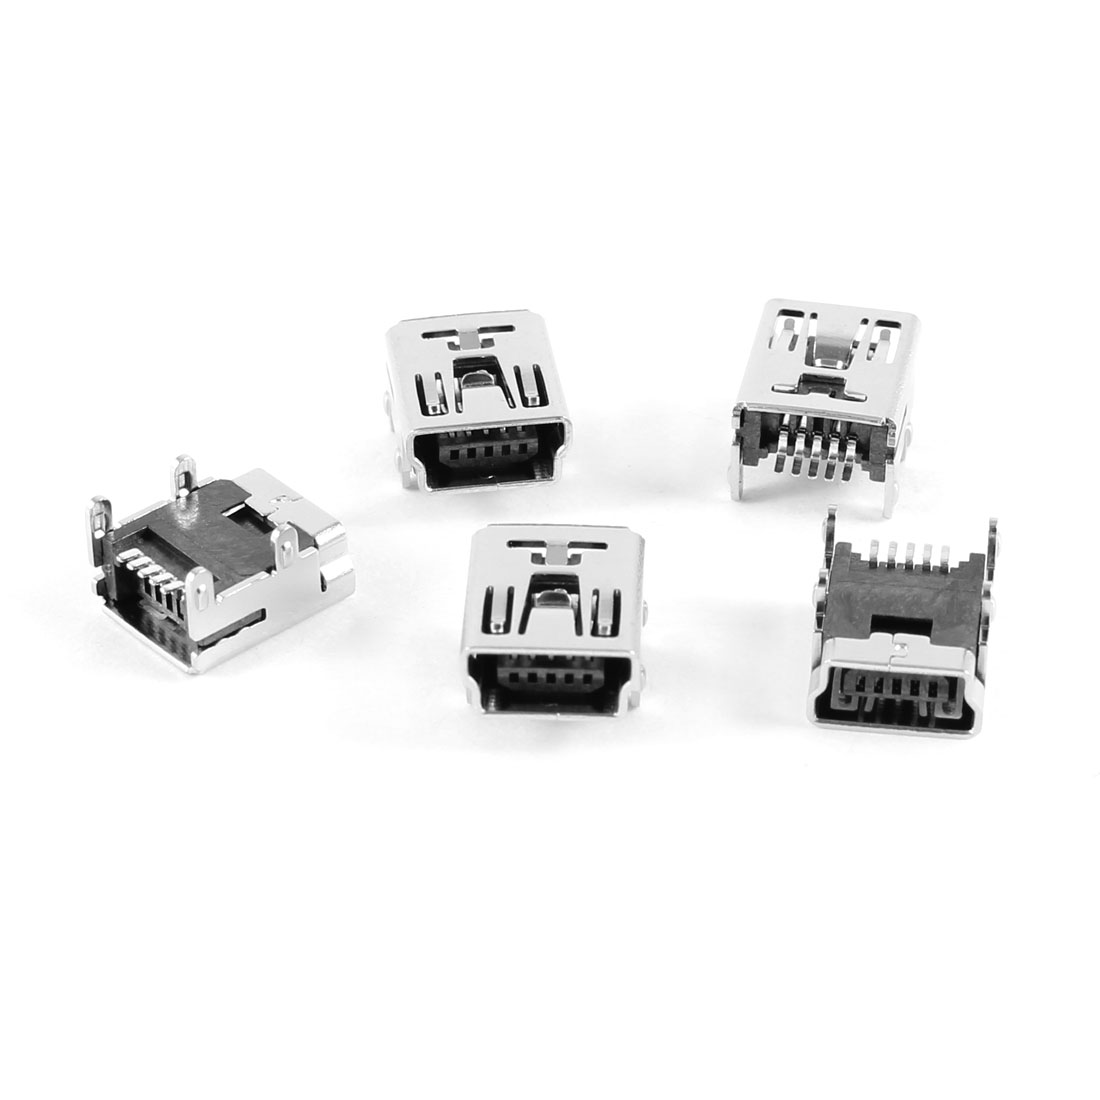 5 Pcs Mini USB Type B Female Socket 5-Pin 180 Degree SMD SMT Jack Connector